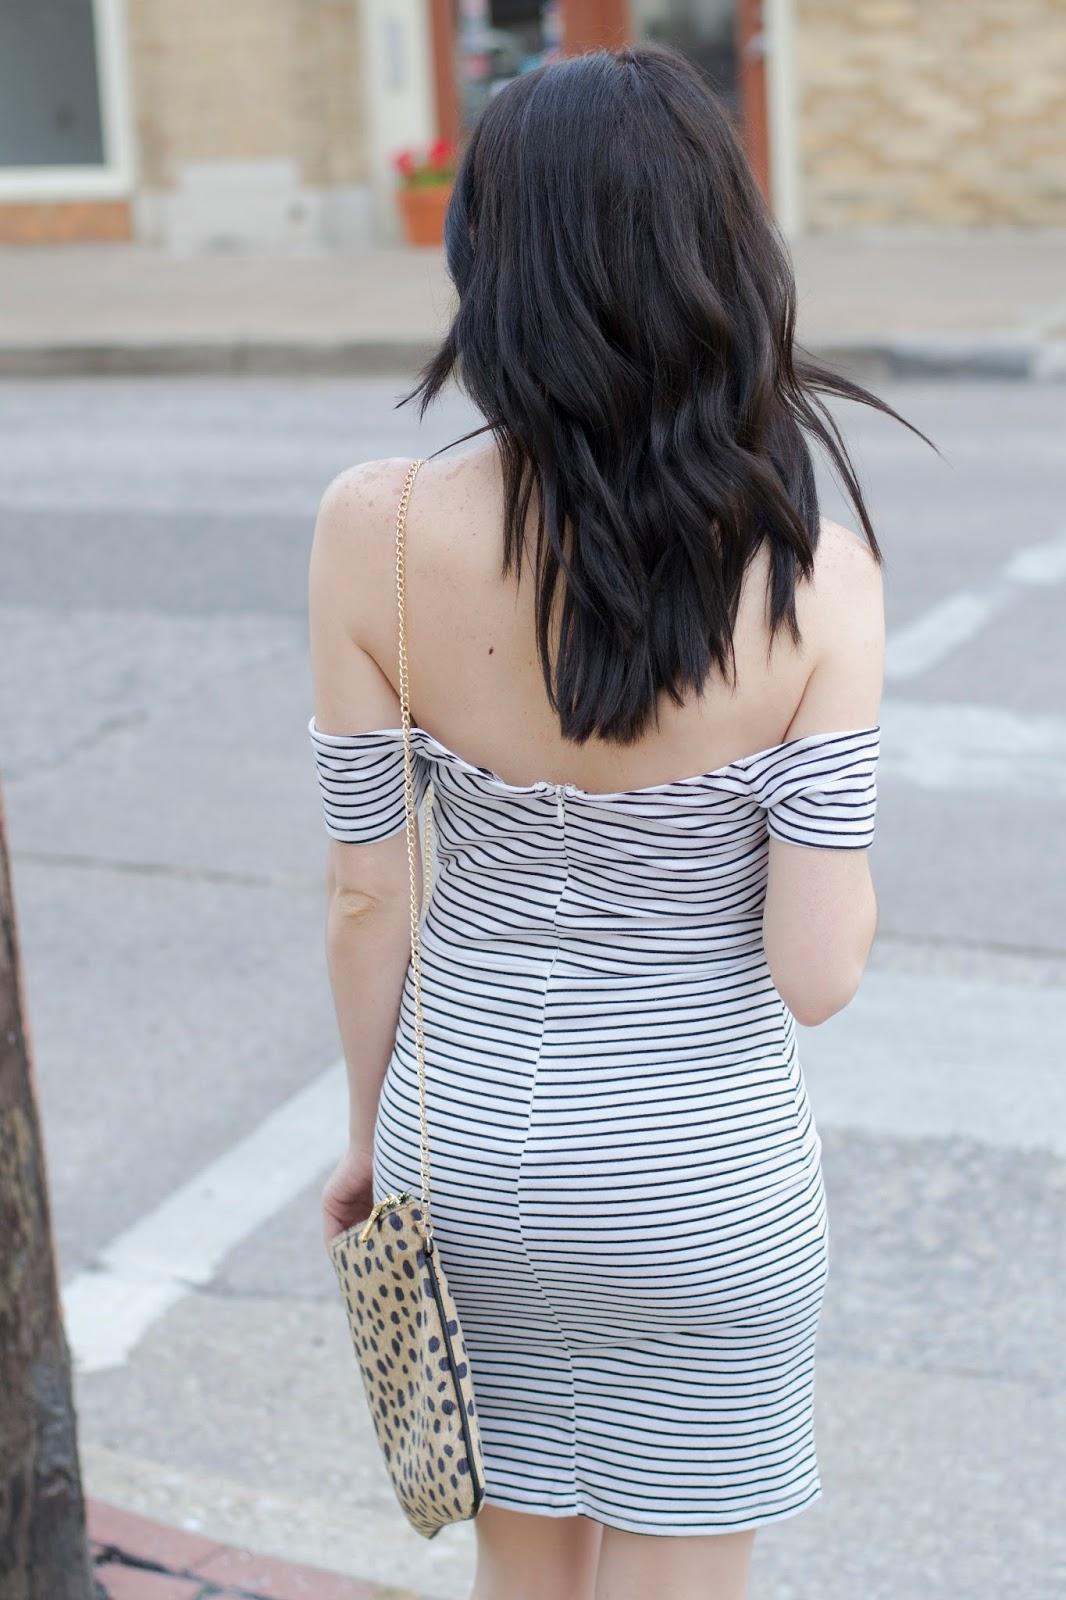 Walking in the city wearing a striped body con off the shoulder dress with loose curls